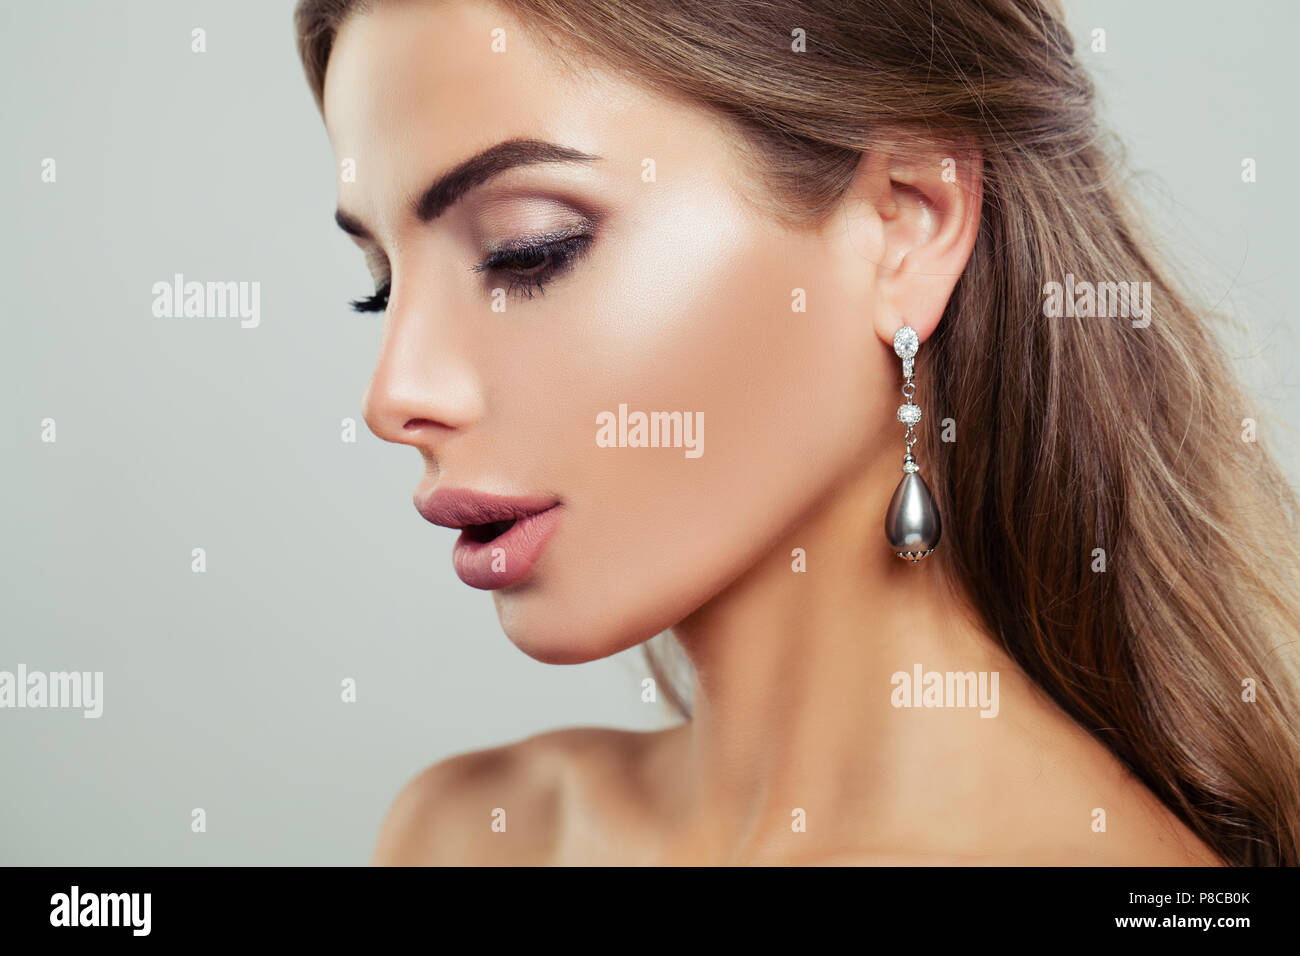 6f55efdbd Attractive Woman wearing Silver Earrings with Pearls and Diamond, Female  Face Closeup - Stock Image